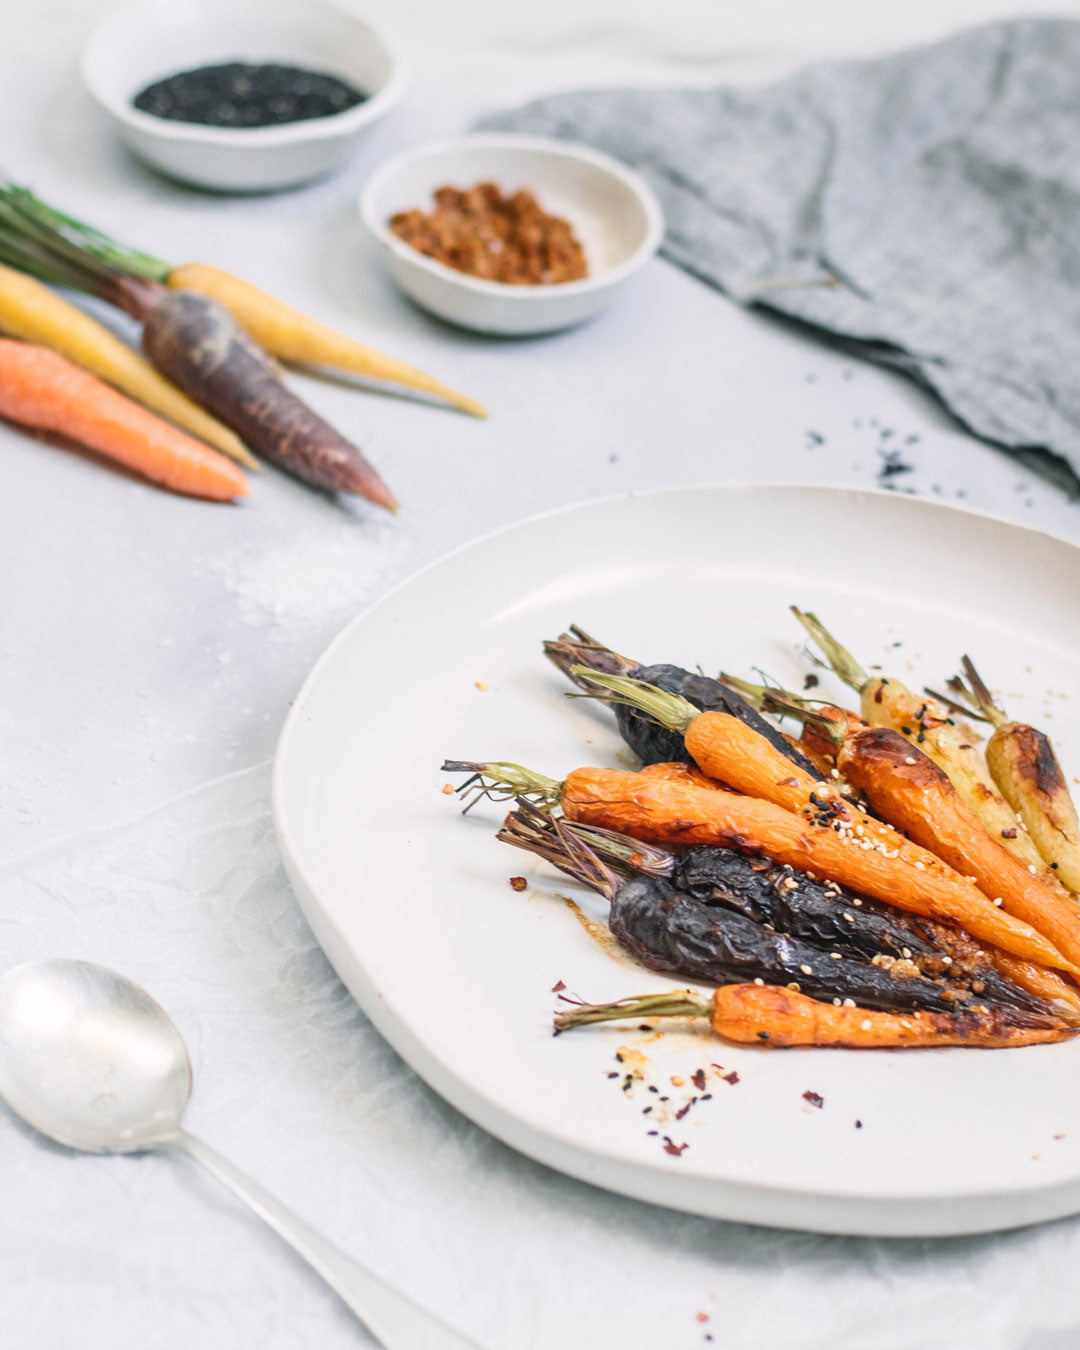 A platter of roasted heirloom carrots